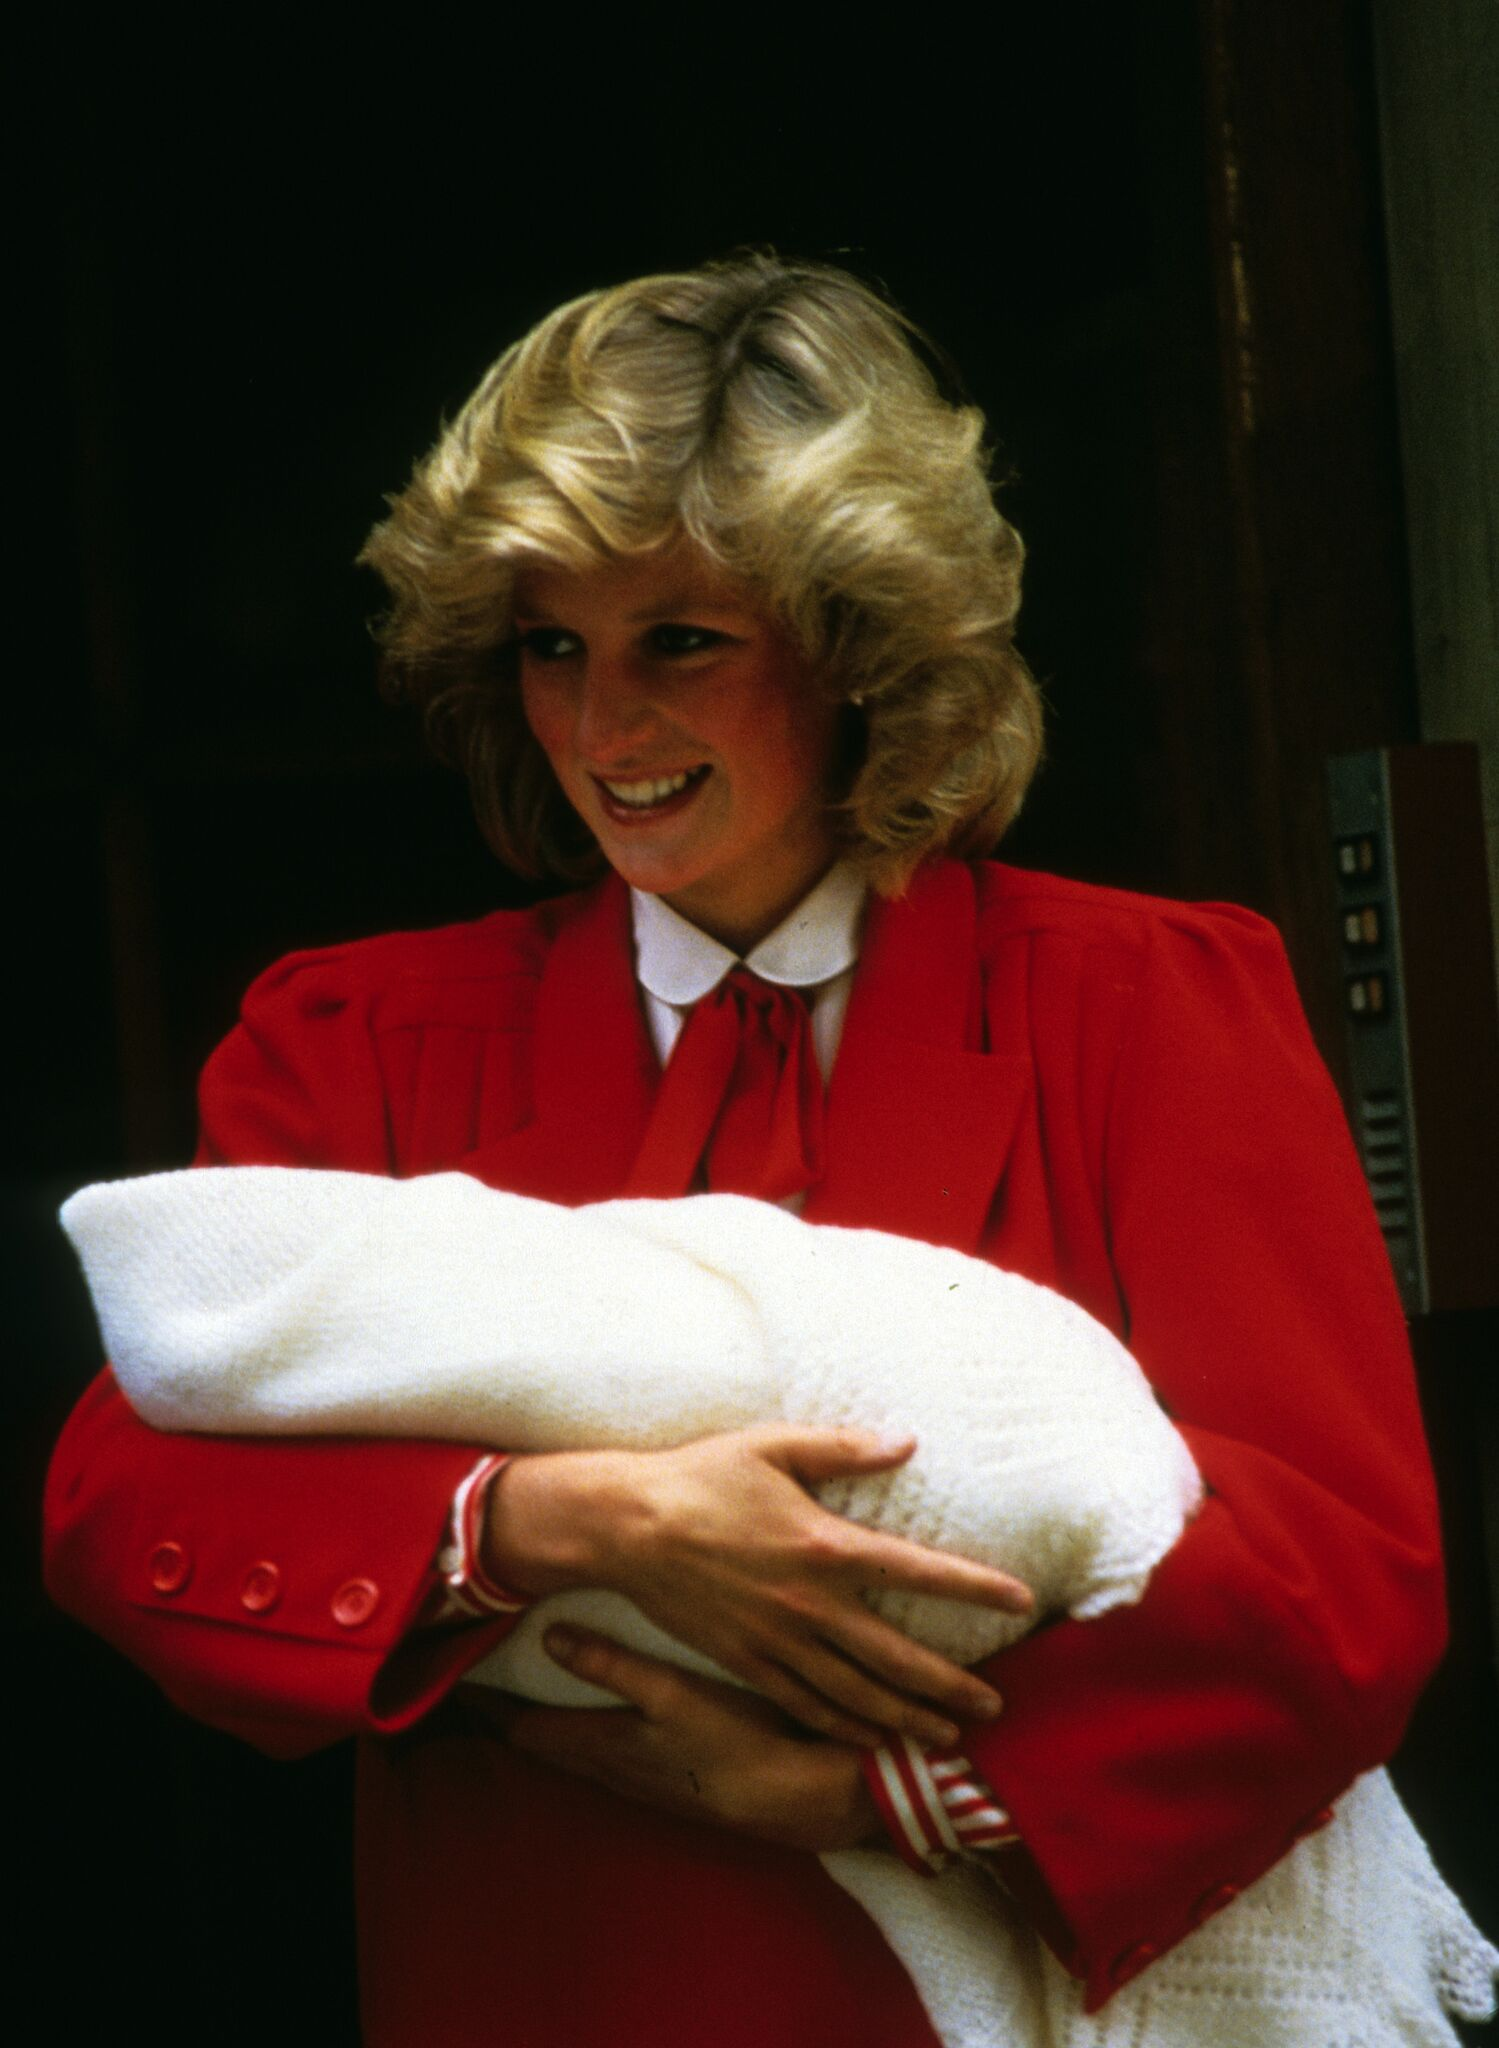 Princess Diana, Princess of Wales, smiles as she carries her newborn baby, Prince Harry when she leaves St. Mary's Hospital